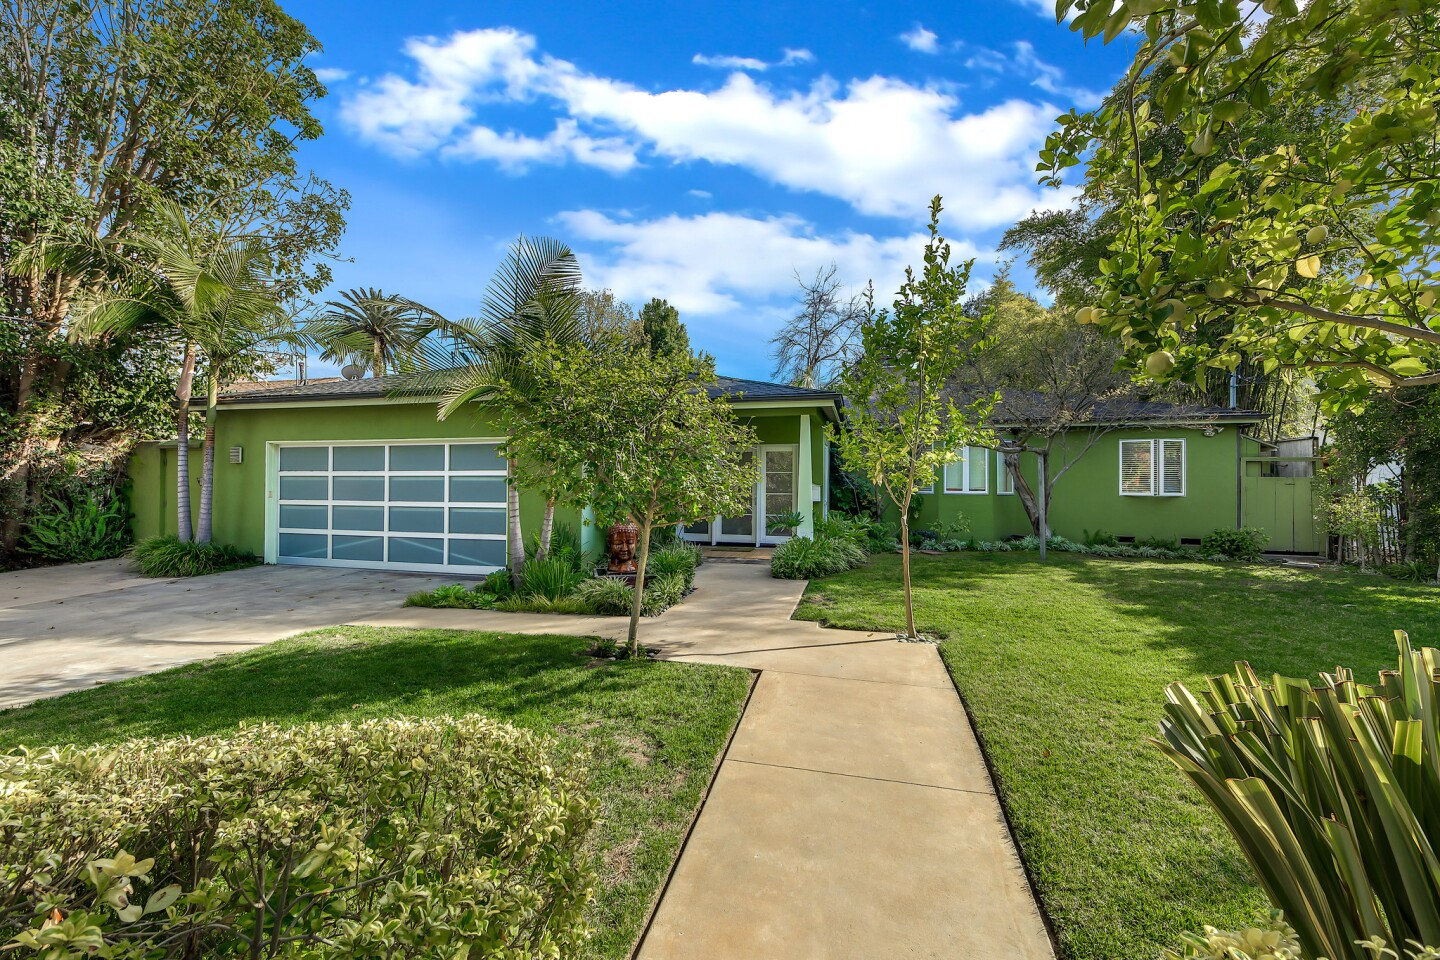 Robert Blake's former home in Studio City | Hot Property